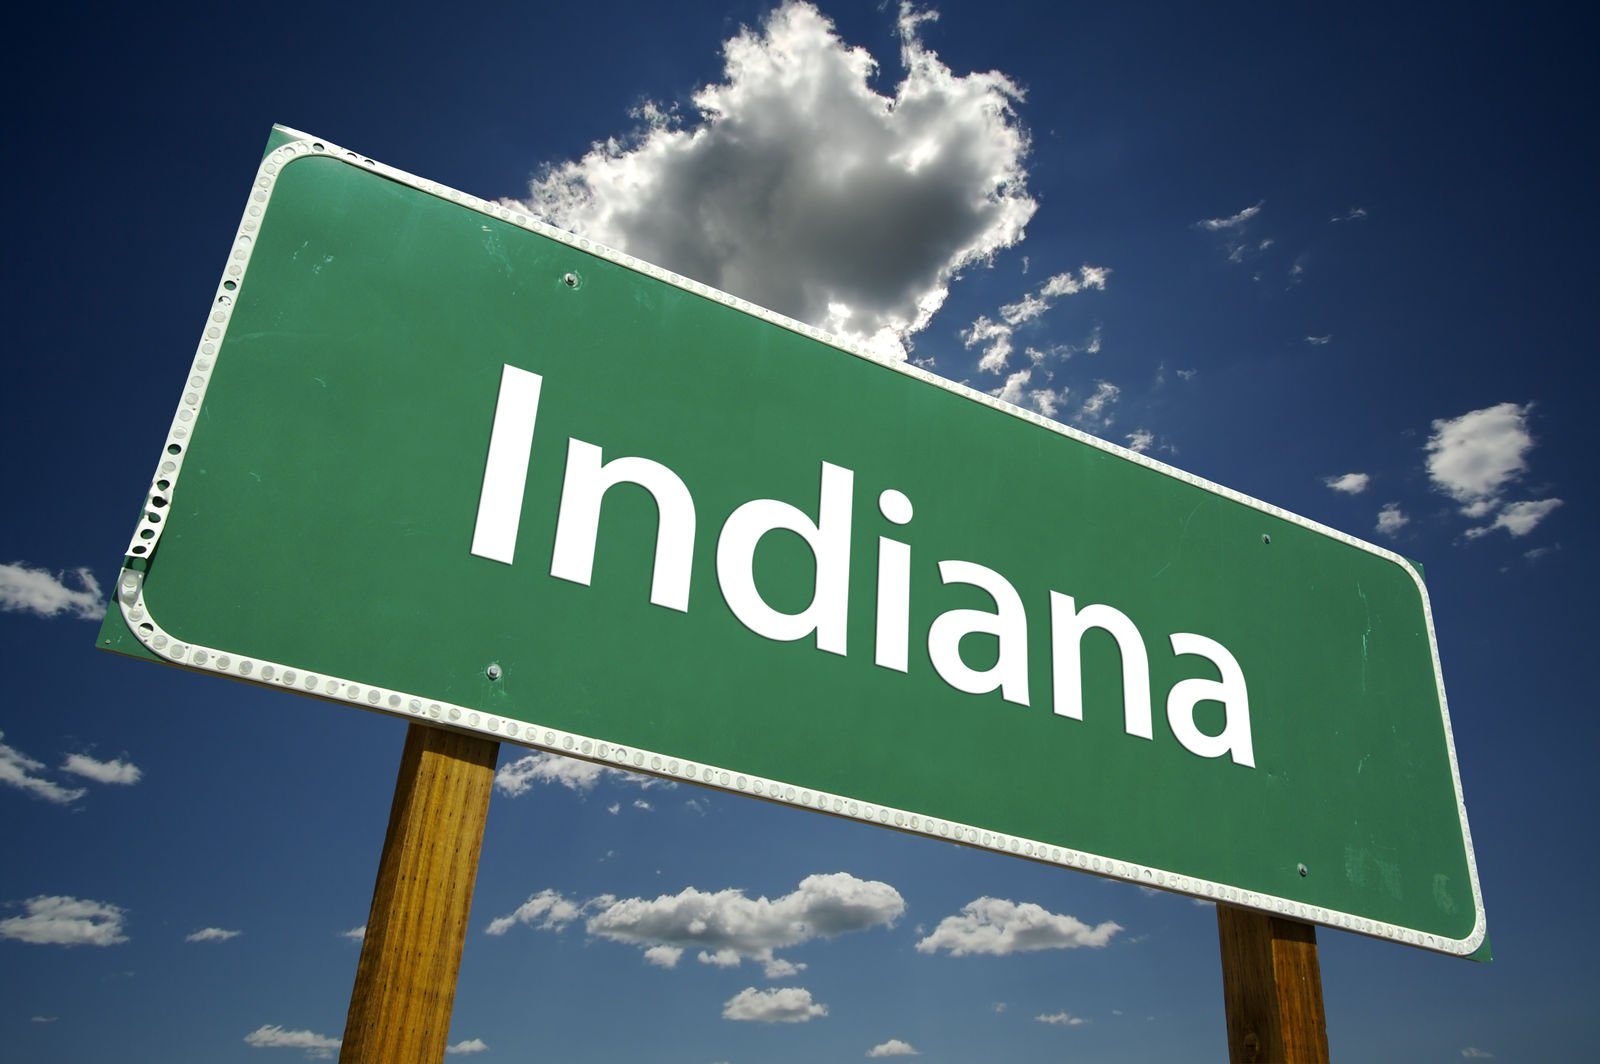 Indiana windshield replacement law